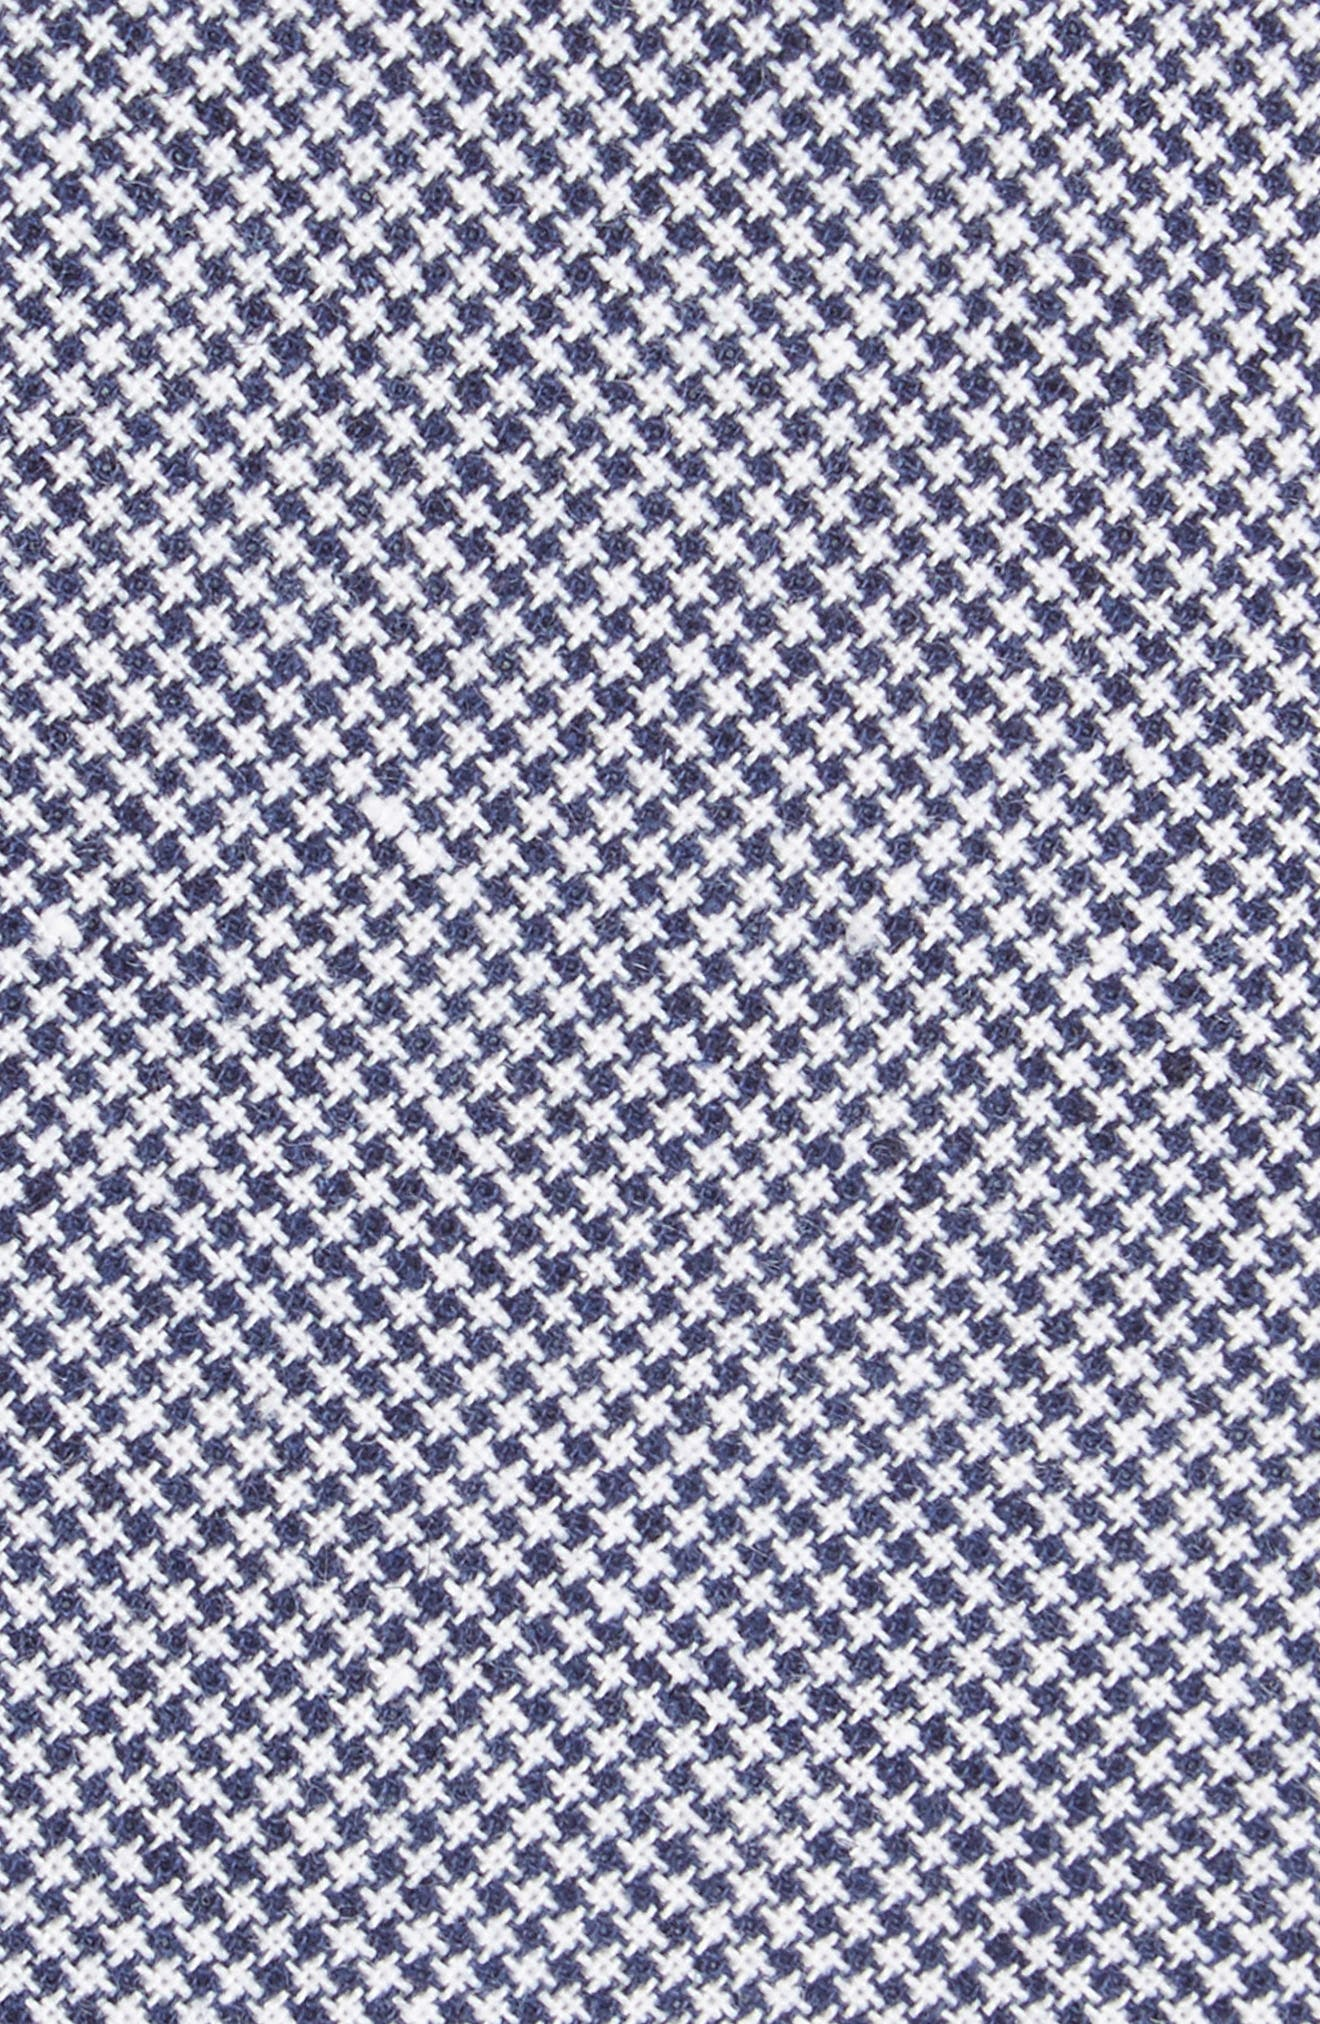 Ralph Houndstooth Cotton & Linen Tie,                             Alternate thumbnail 2, color,                             Navy